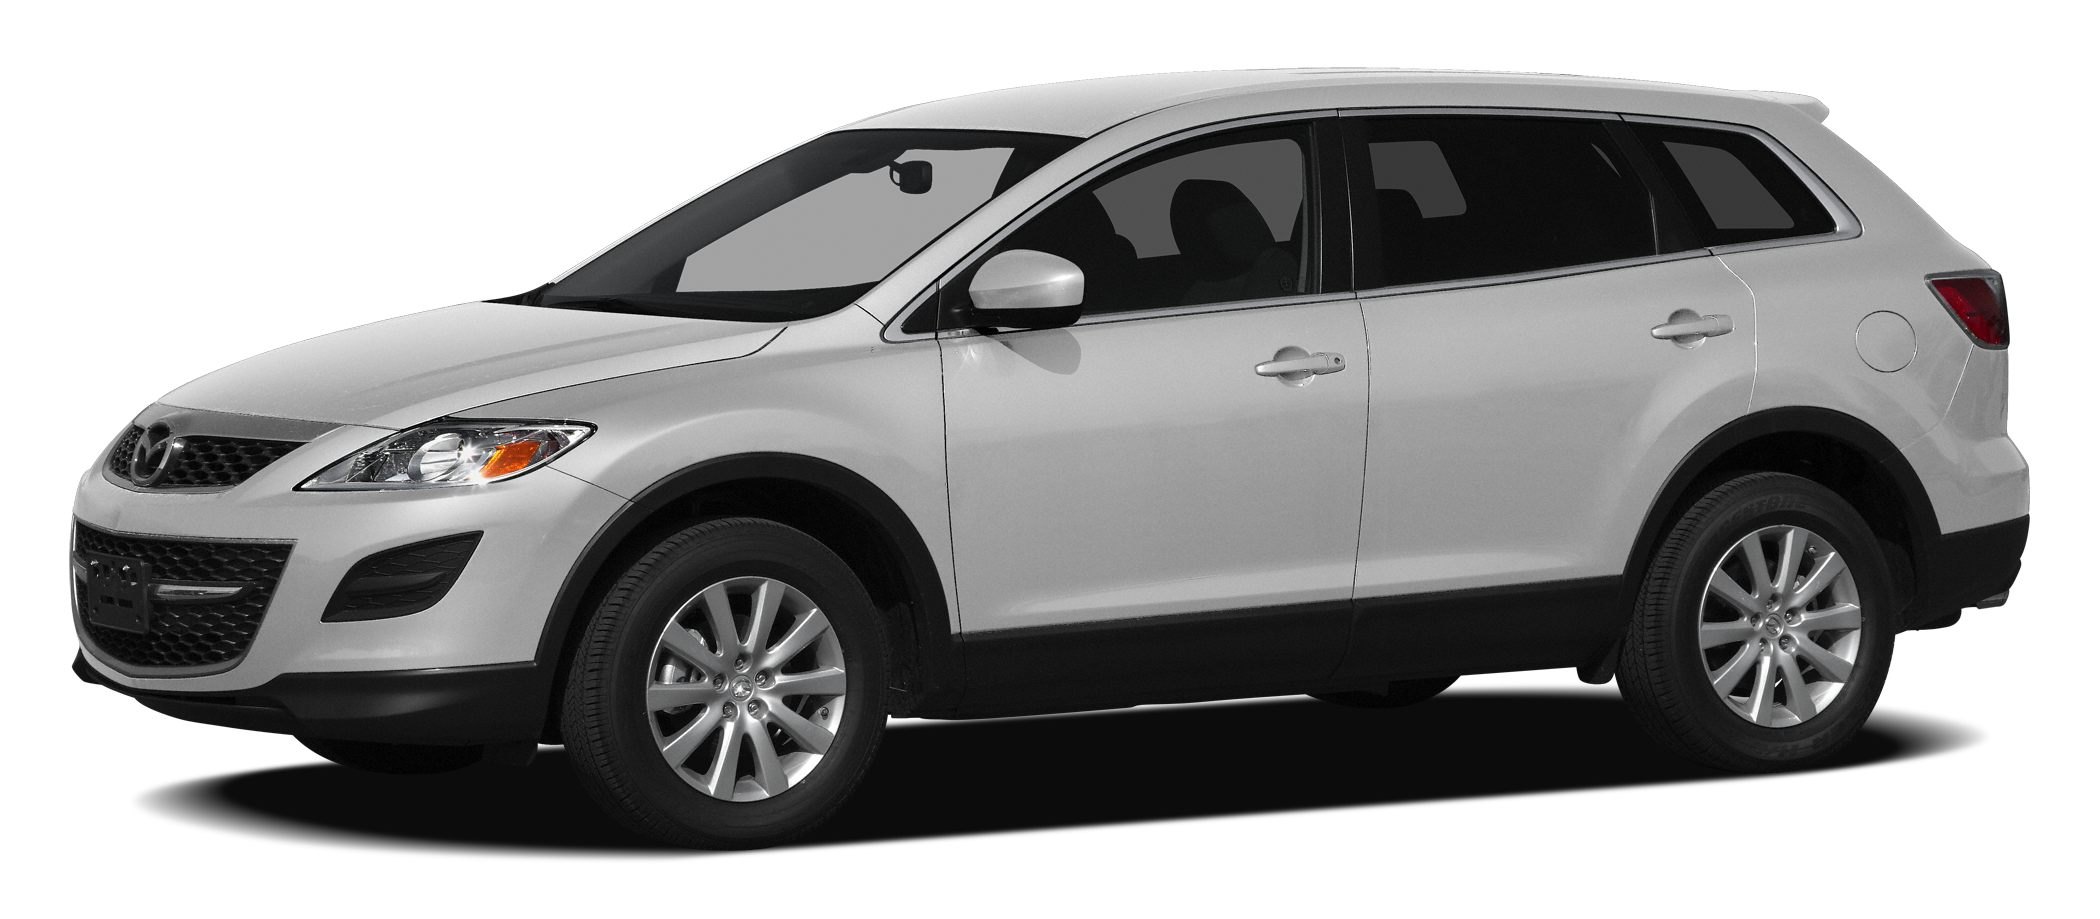 2010 Mazda CX-9 Sport Snatch a steal on this 2010 Mazda CX-9 before someone else snatches it Spac